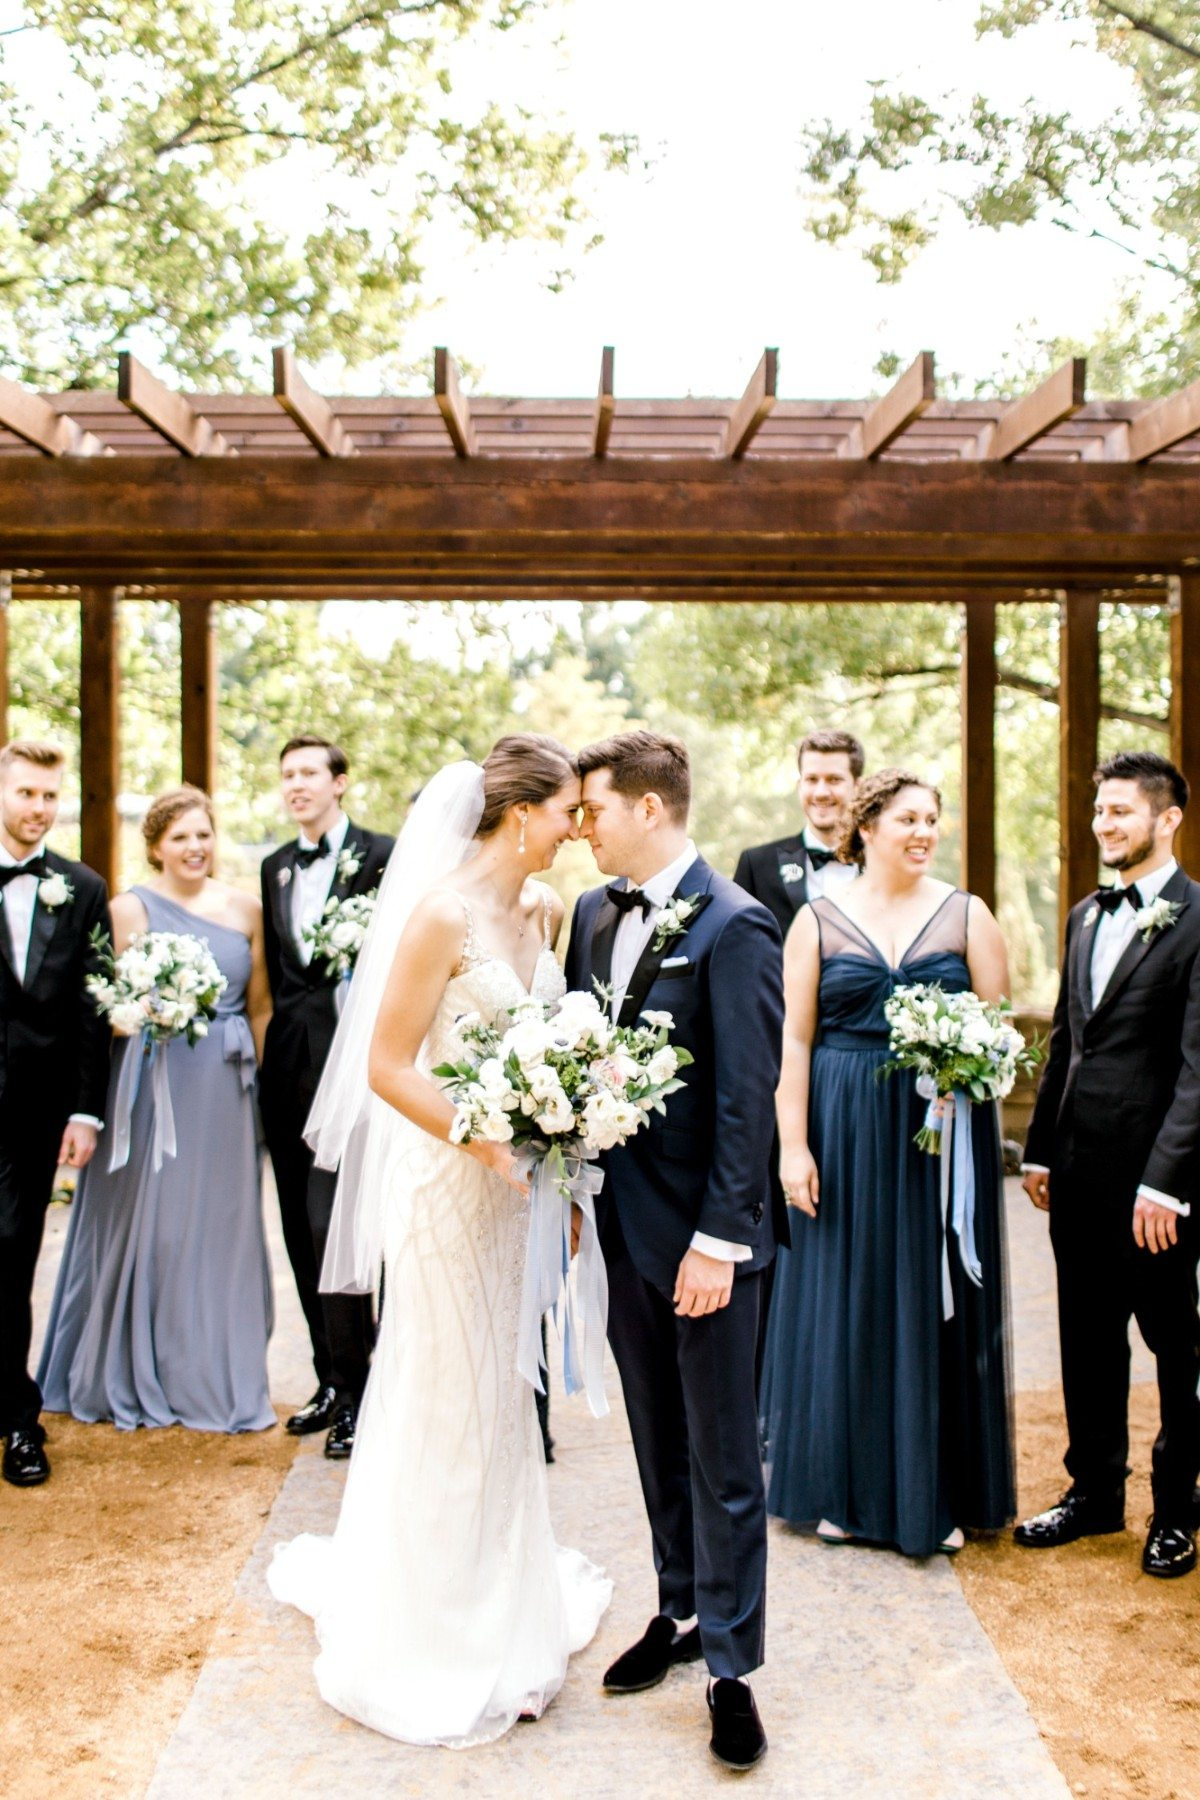 peppers-wedding-the-big-and-bright-10.20.18-47.jpg